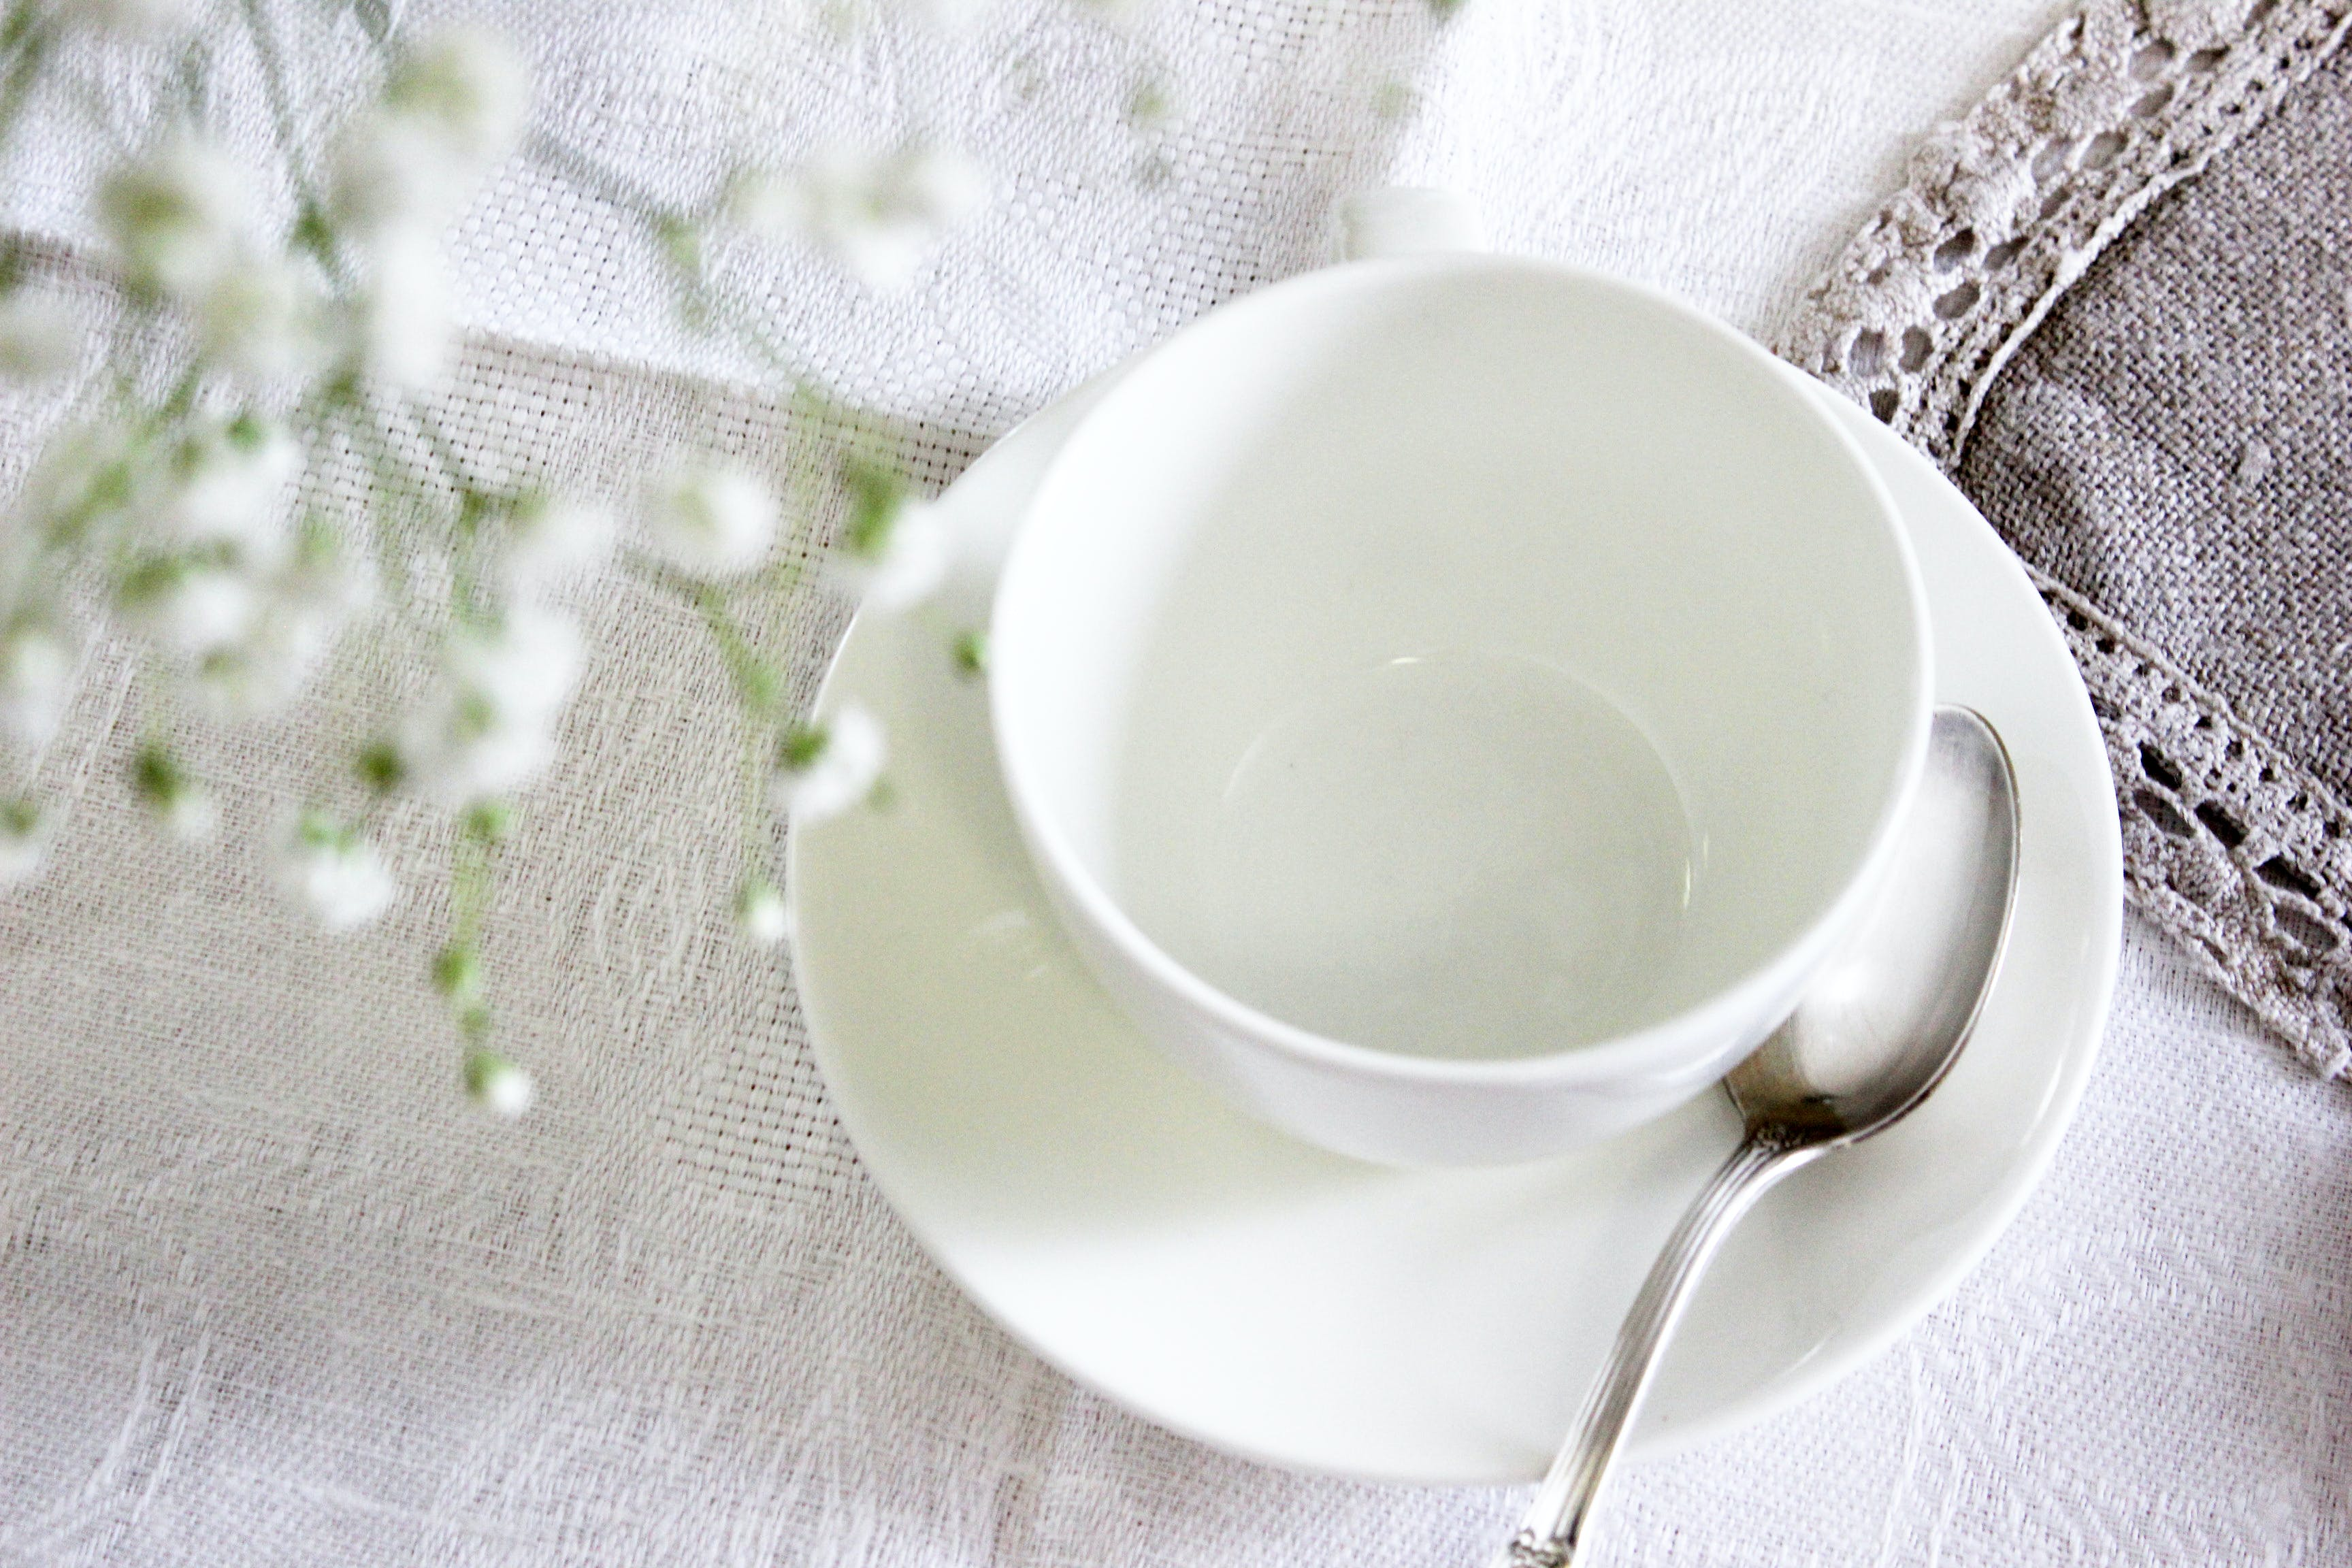 White Ceramic Tea Cup With Saucer and Spoon